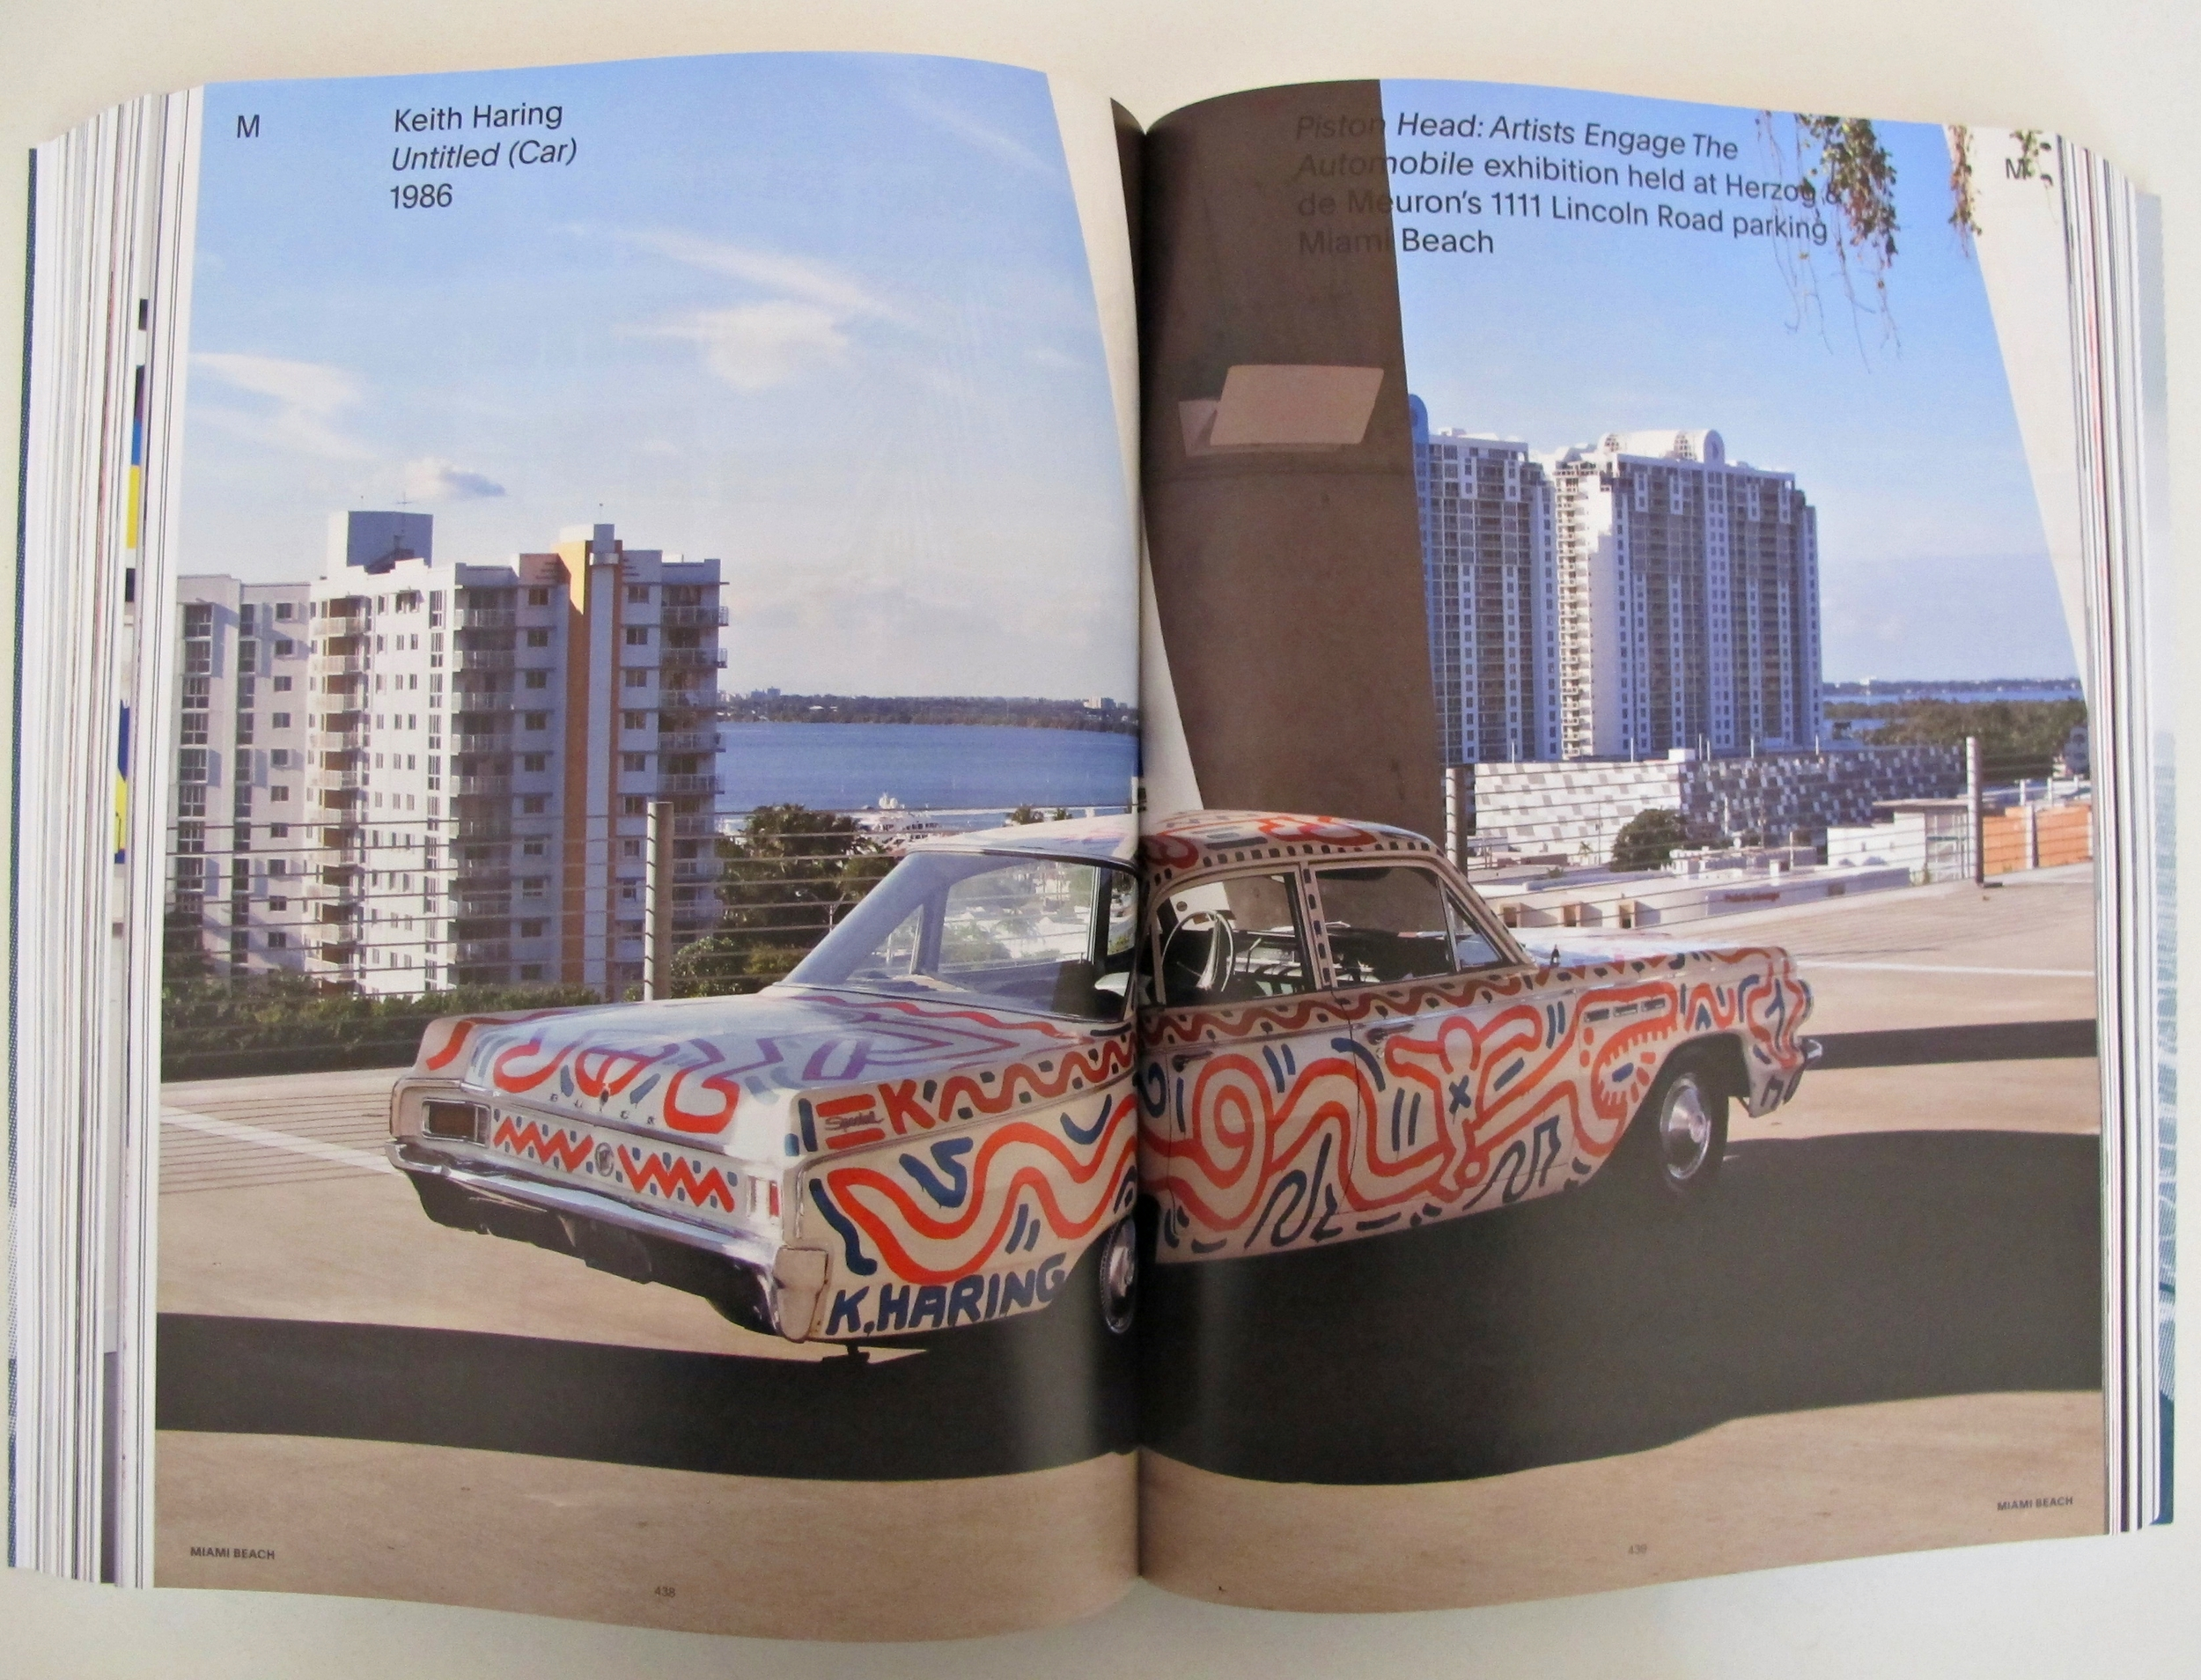 A car that Keith Haring painted on in 1986 was brought to the Automobile Exhibition held at Herzog & de Meuron's 1111 Lincoln Road Parking in Miami Beach, 2013